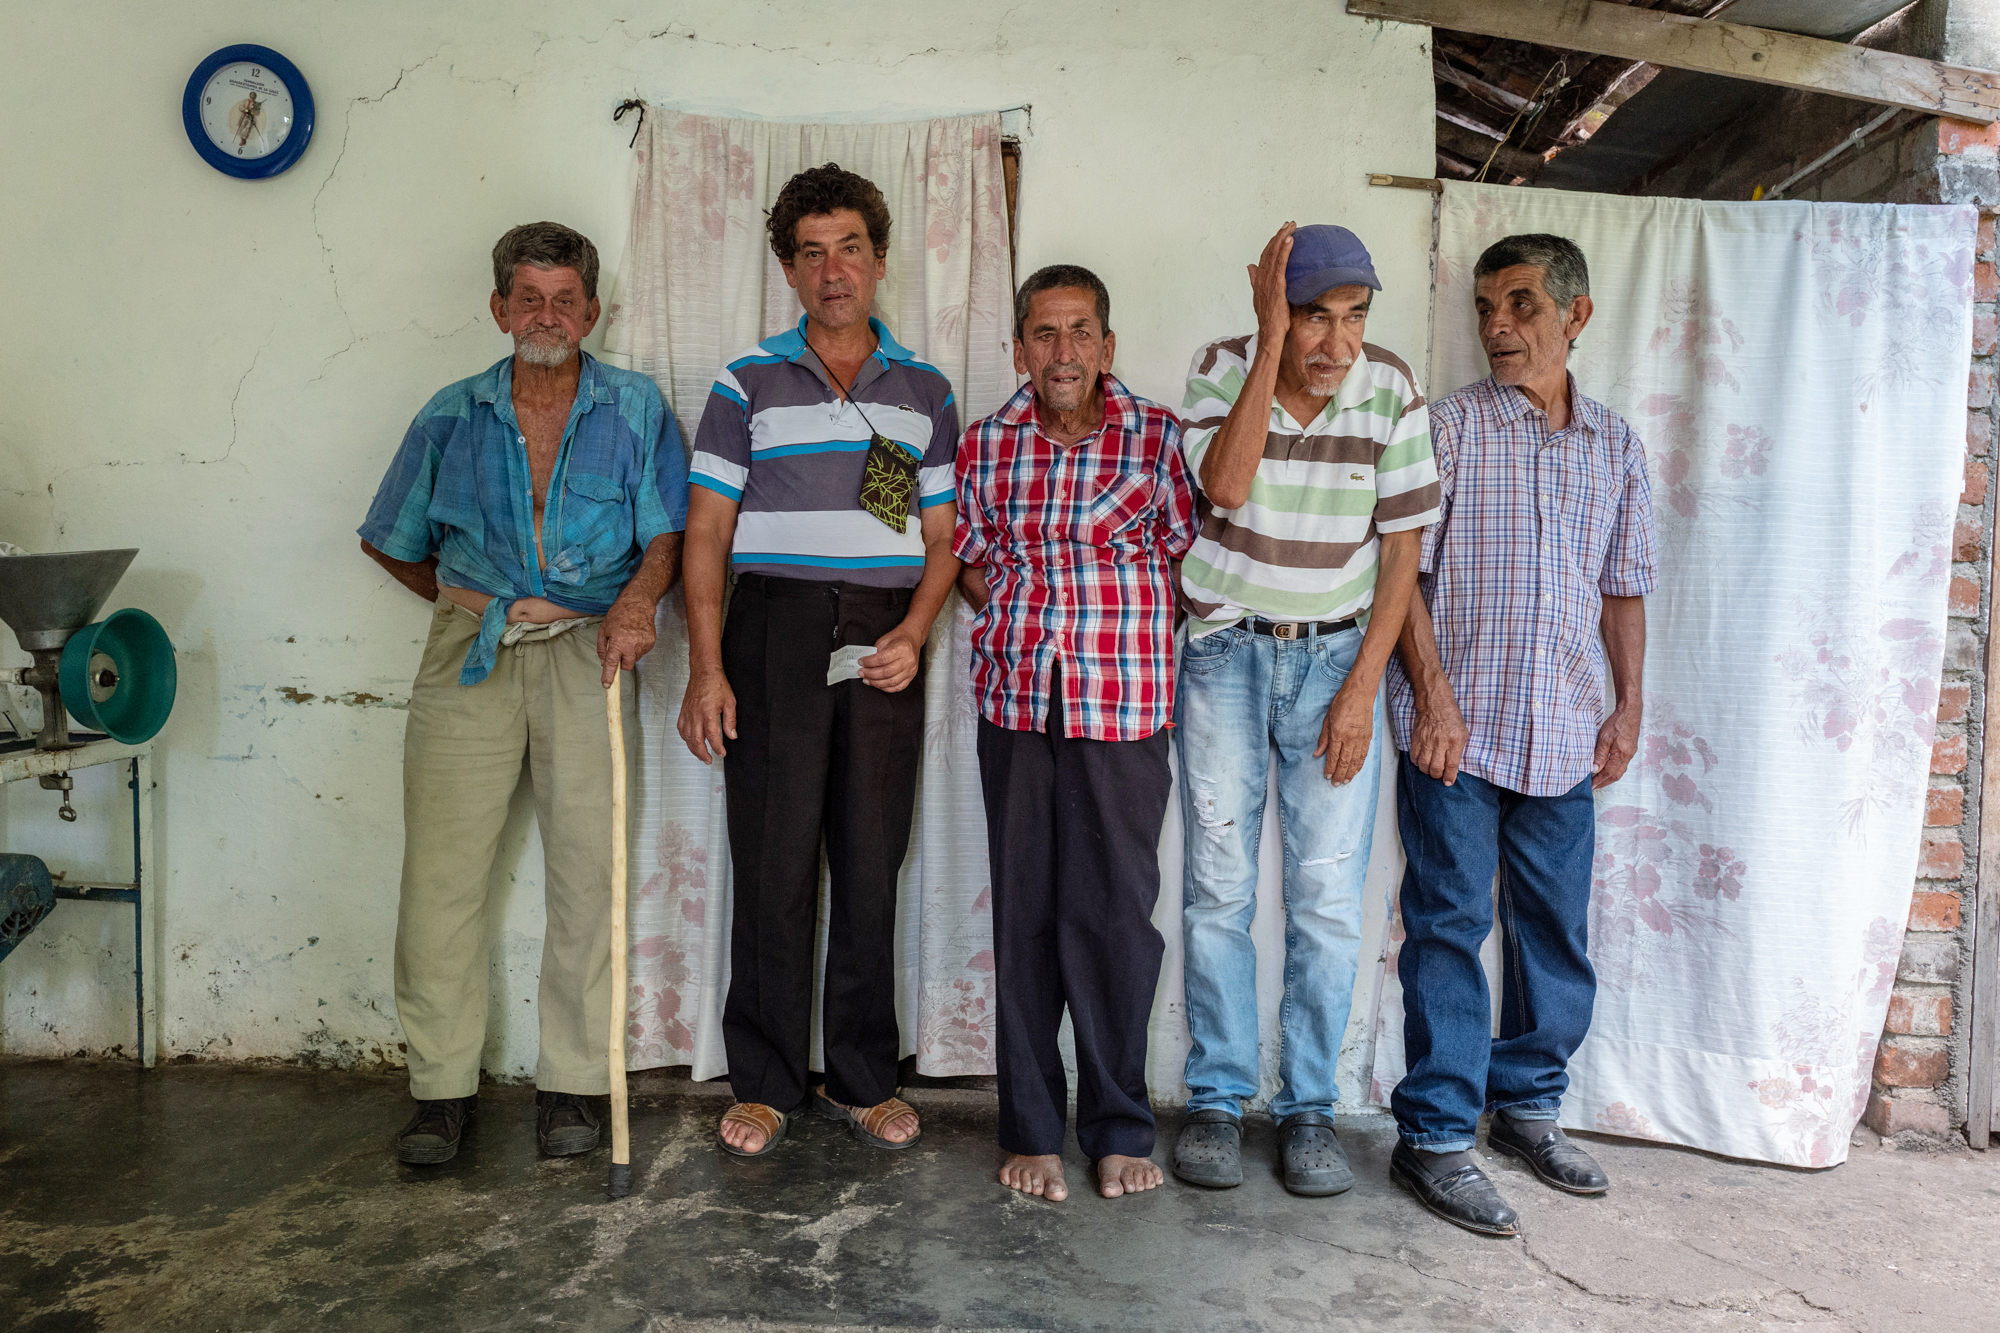 Group of men pose for a portrait.